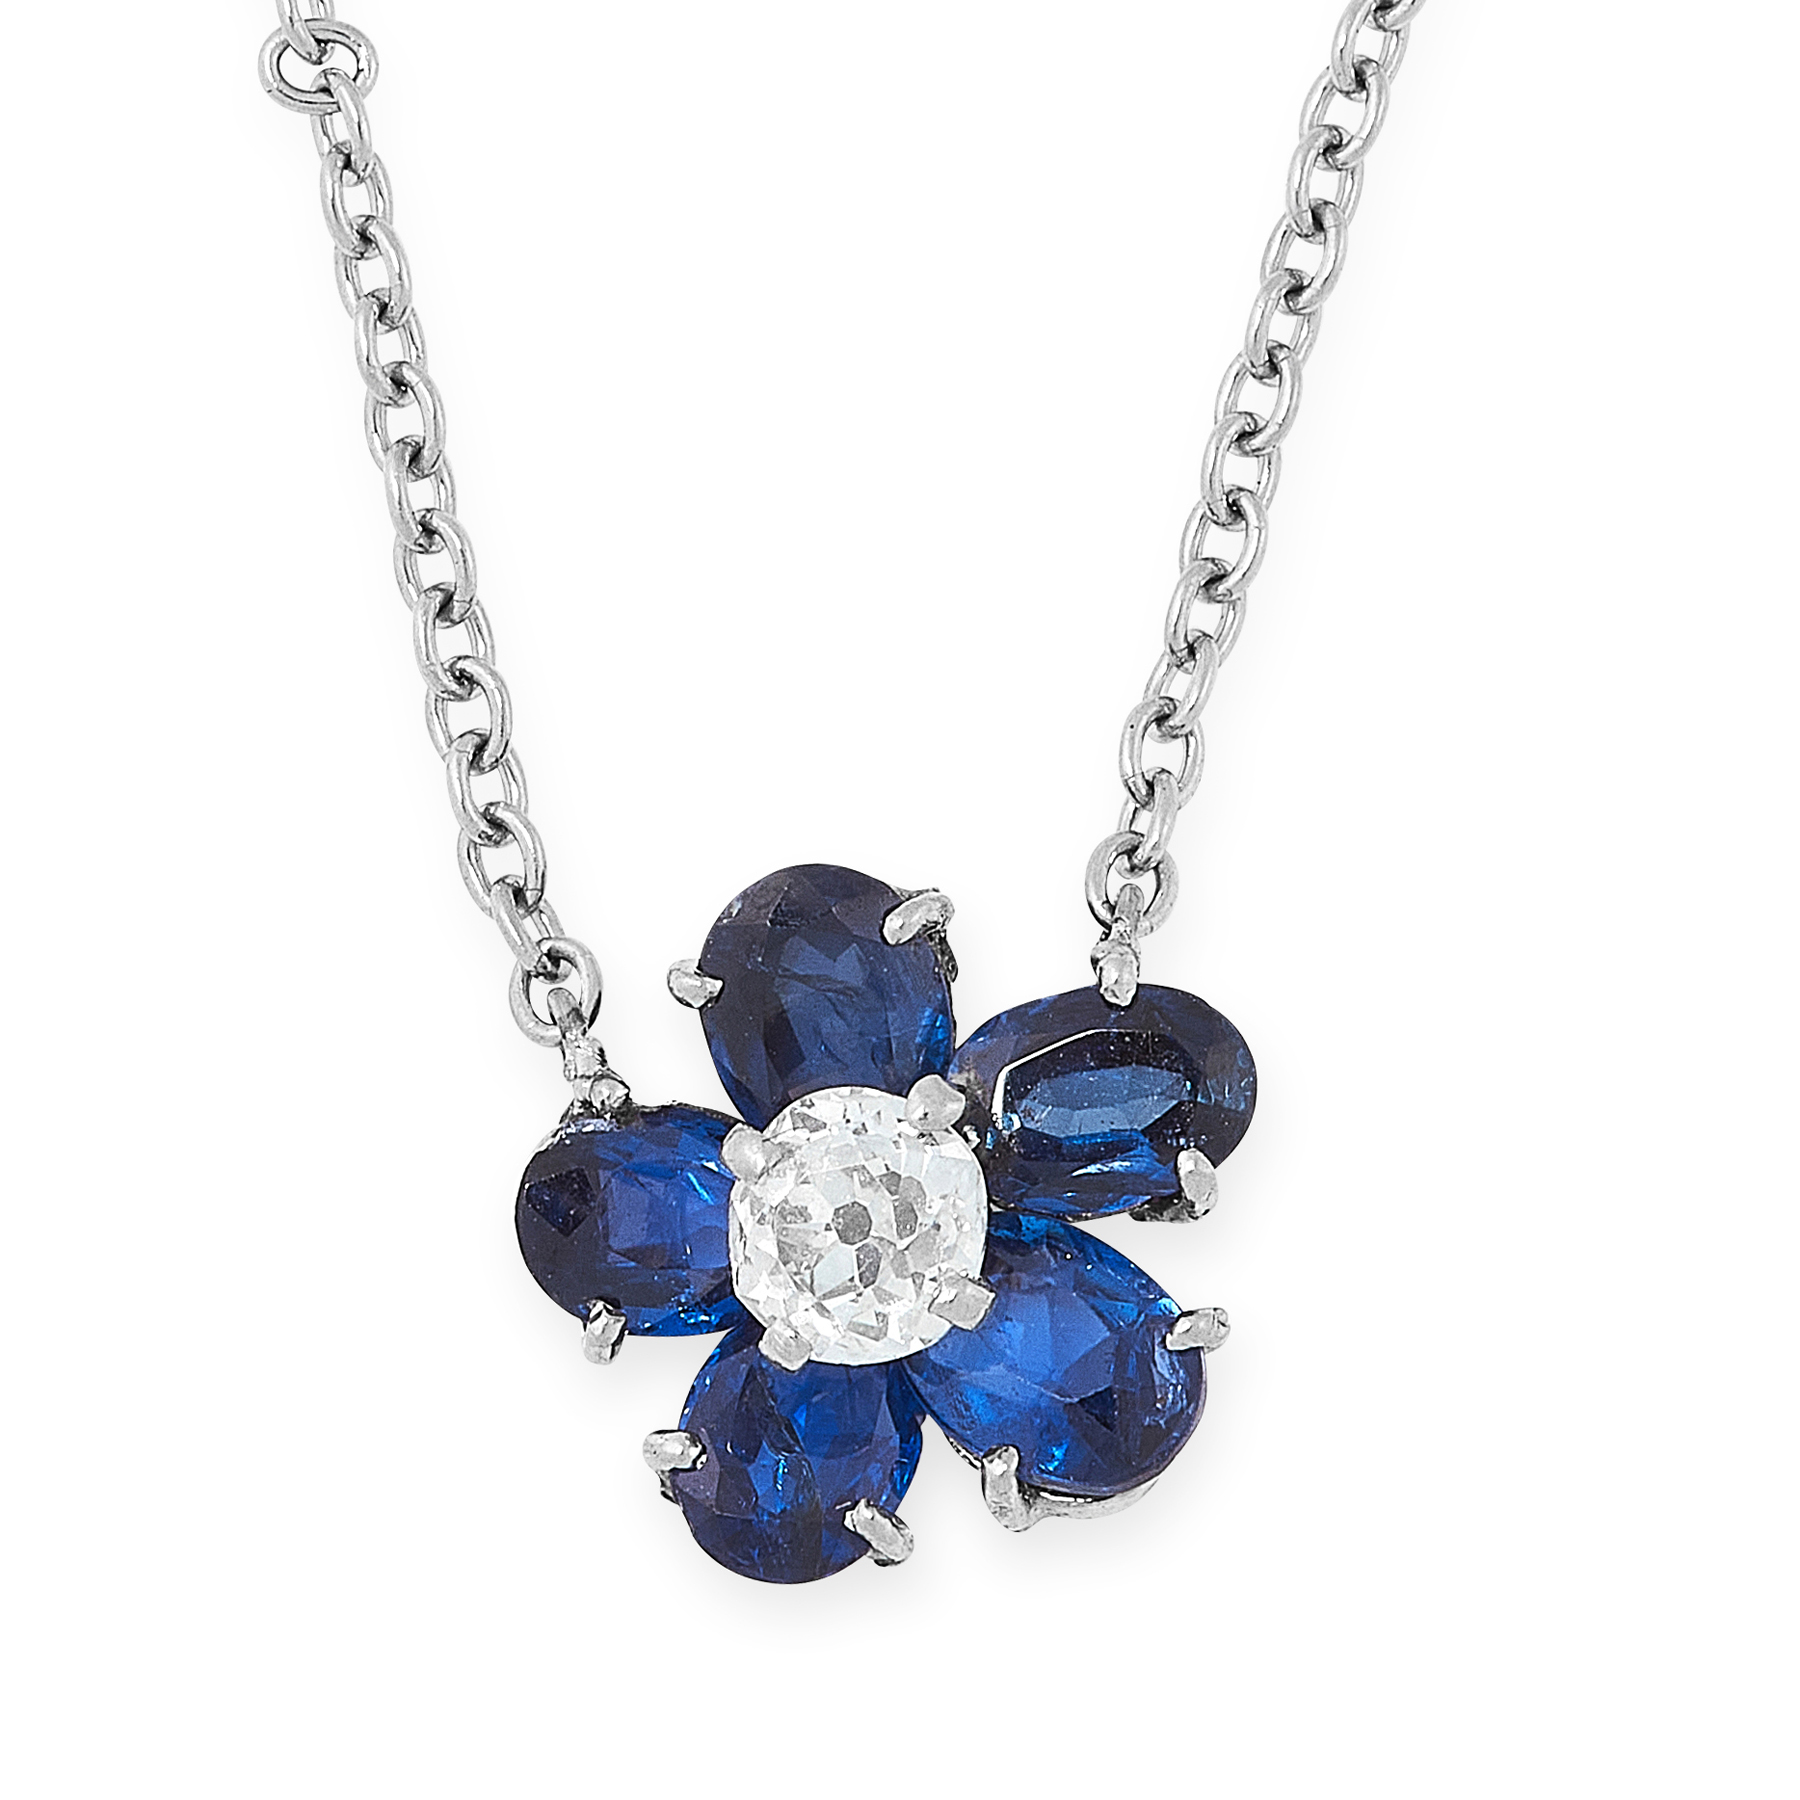 A SAPPHIRE AND DIAMOND PENDANT NECKLACE designed as a flower, set with an old cut diamond within a